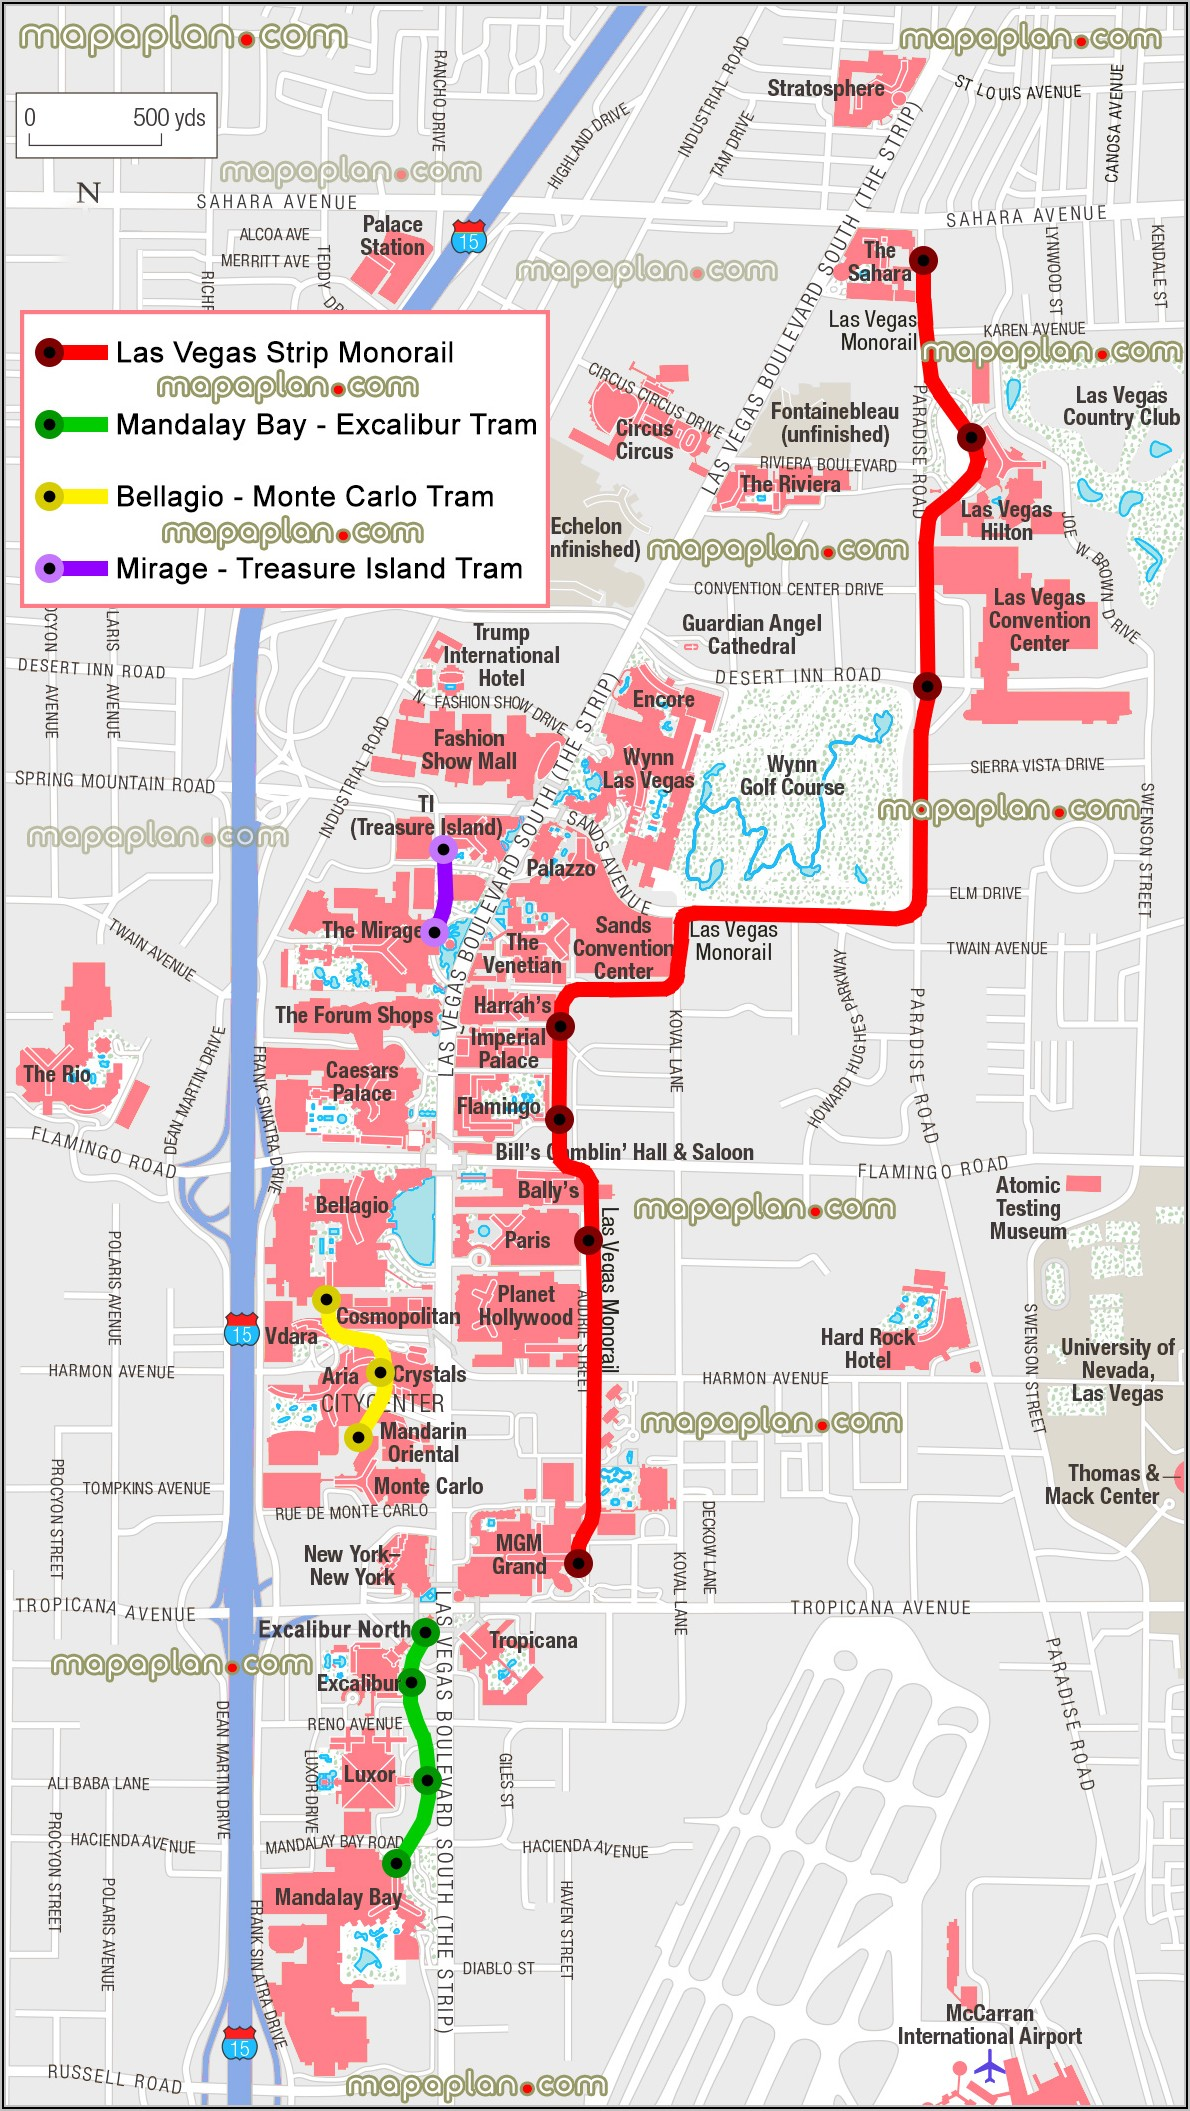 Las Vegas Strip Map With Monorail Stops